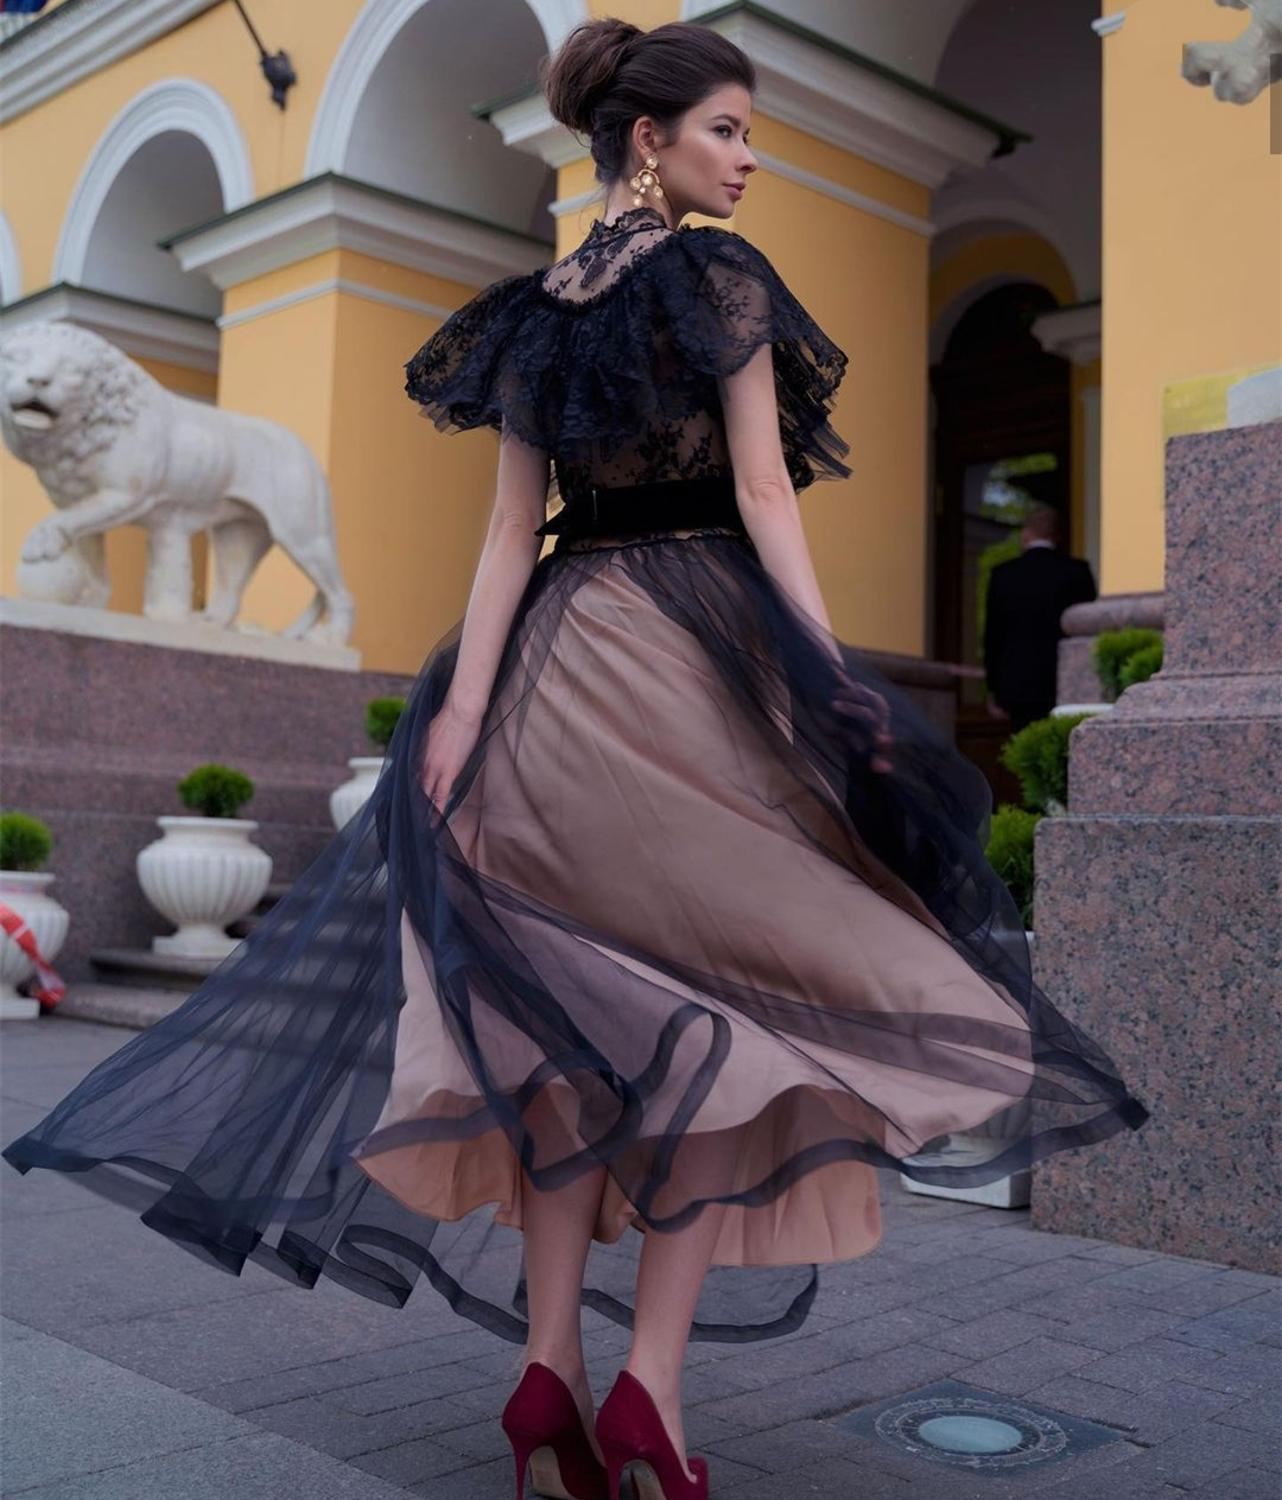 Black Prom Dress 2021 A-Line Floor Length Off Shoulder Crystal Beaded Women Formal Party Gowns Elegant Tulle Special Occasion